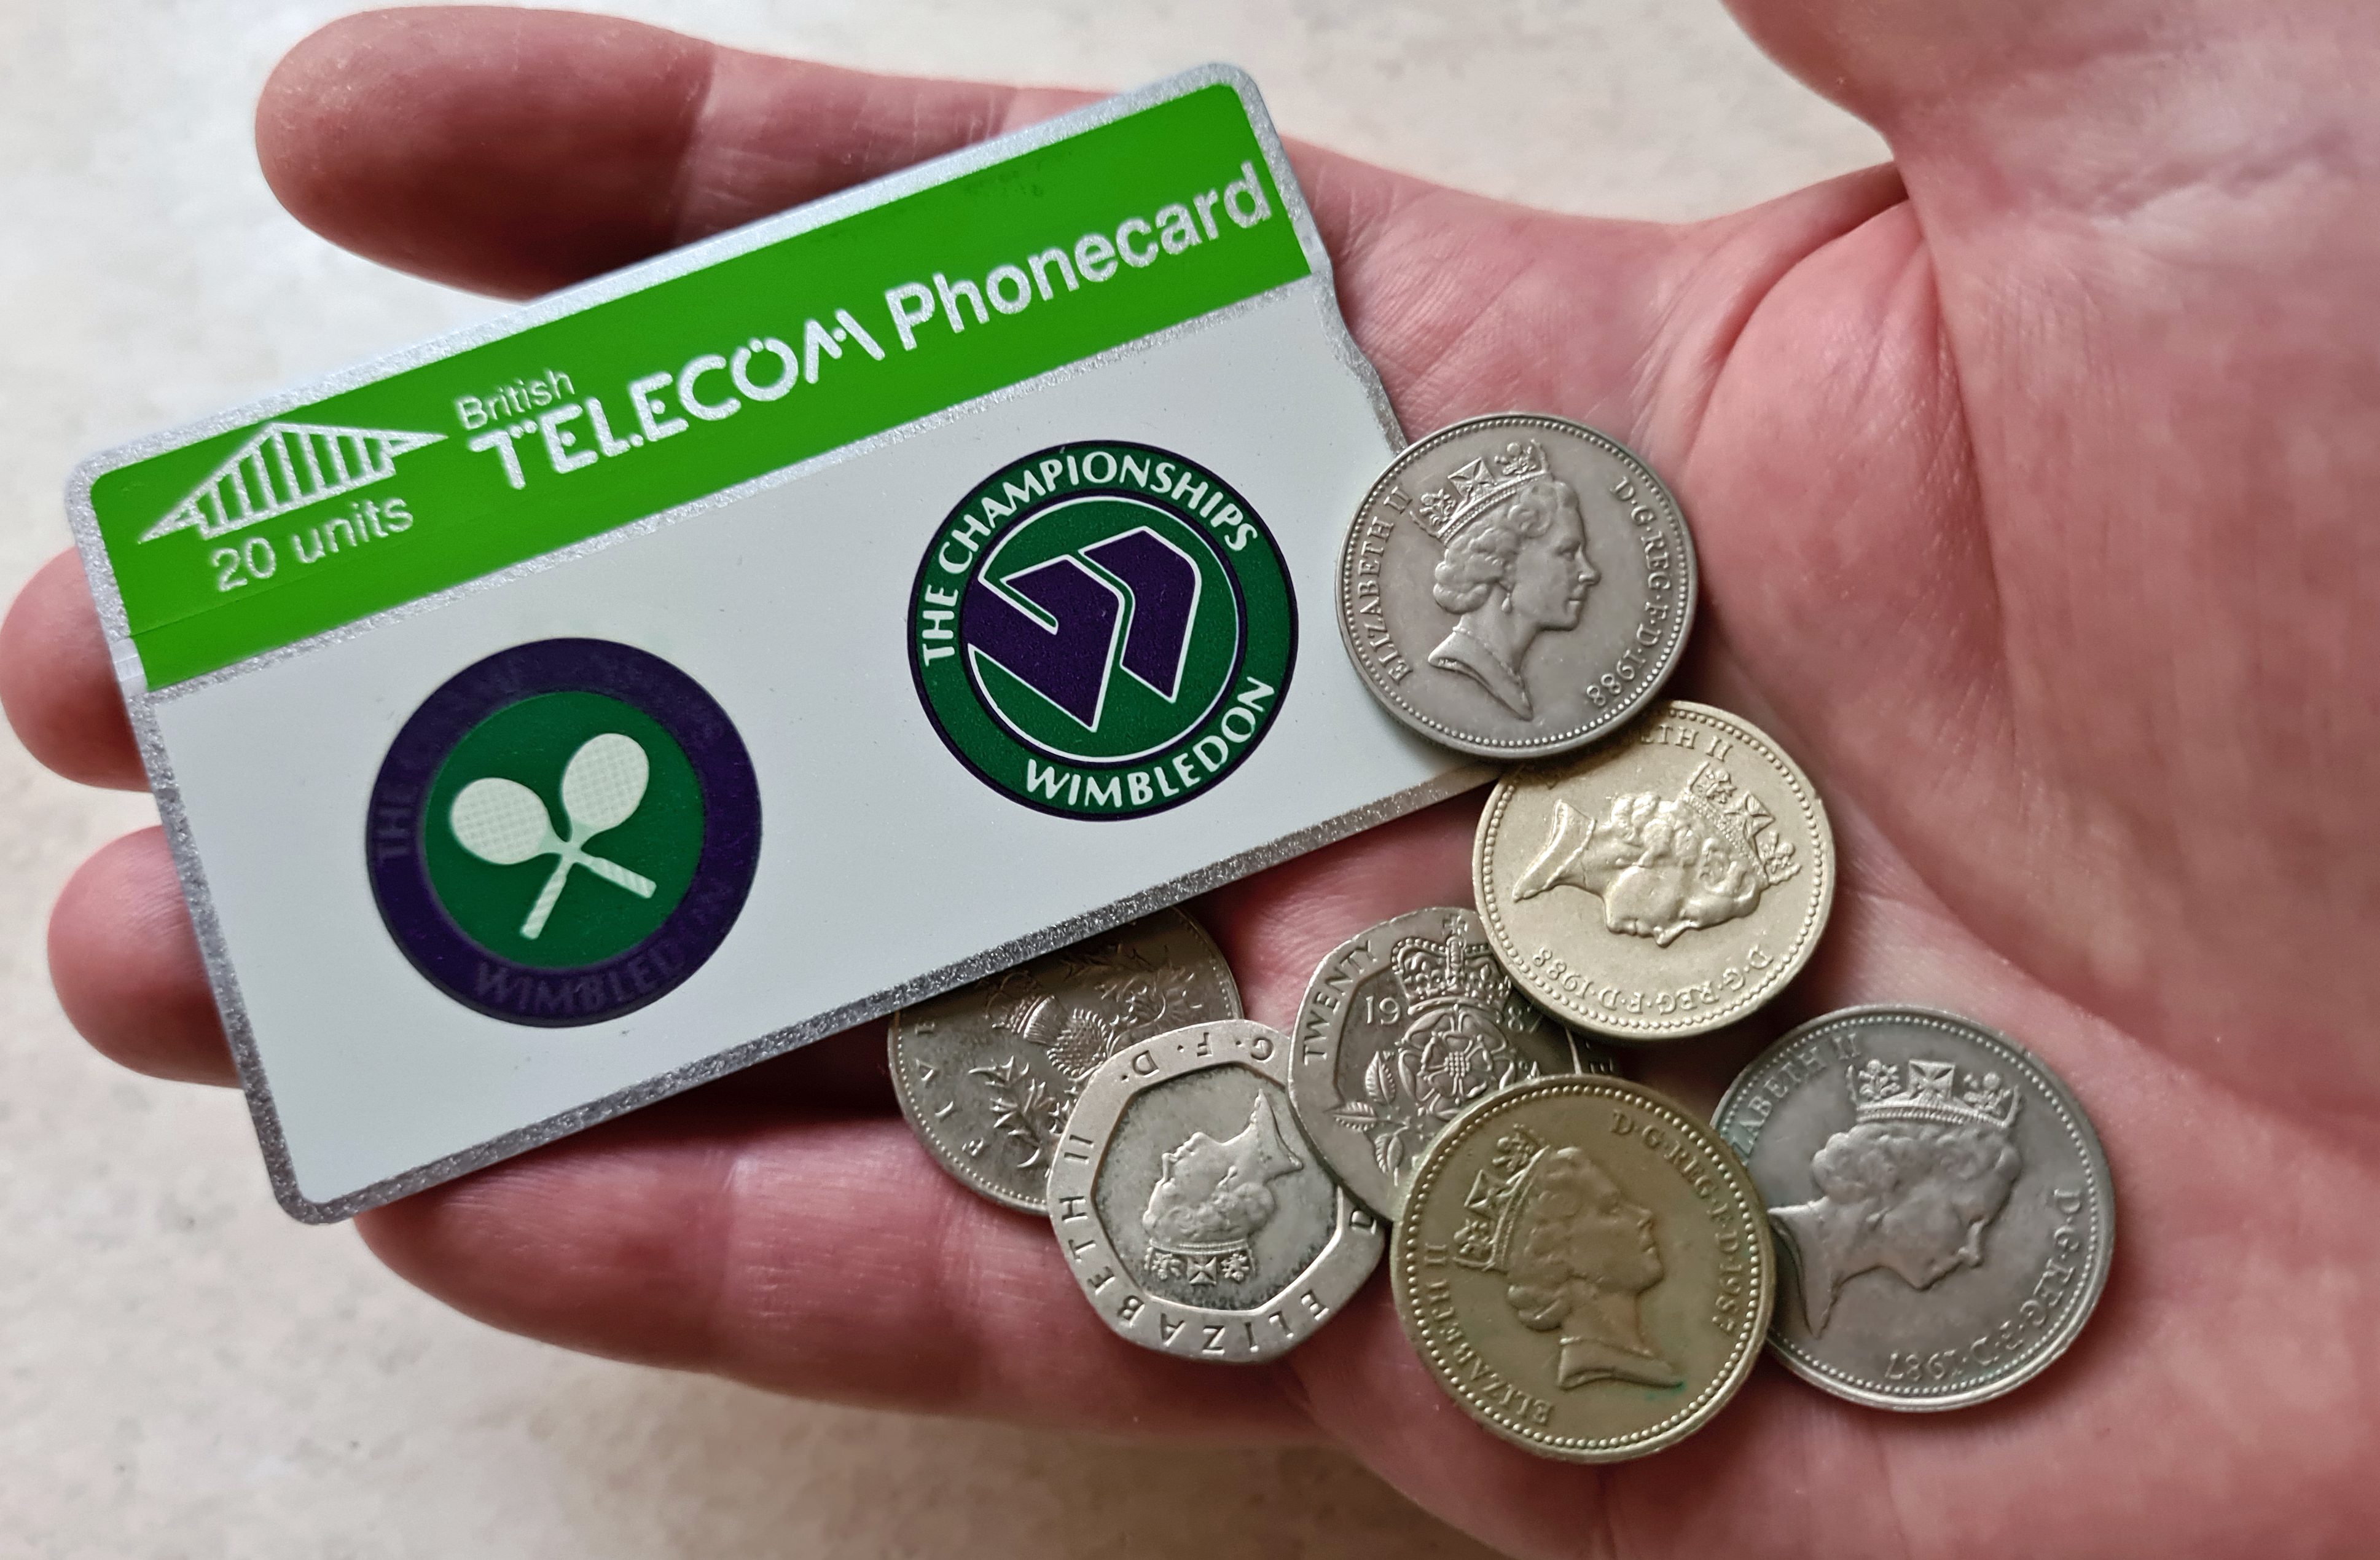 For just a couple of years in the mid to late 1980's, the independent traveller in the UK was advised to carry both change for the phone, and a Phonecard. This was prior to any mobile phone service being generally available